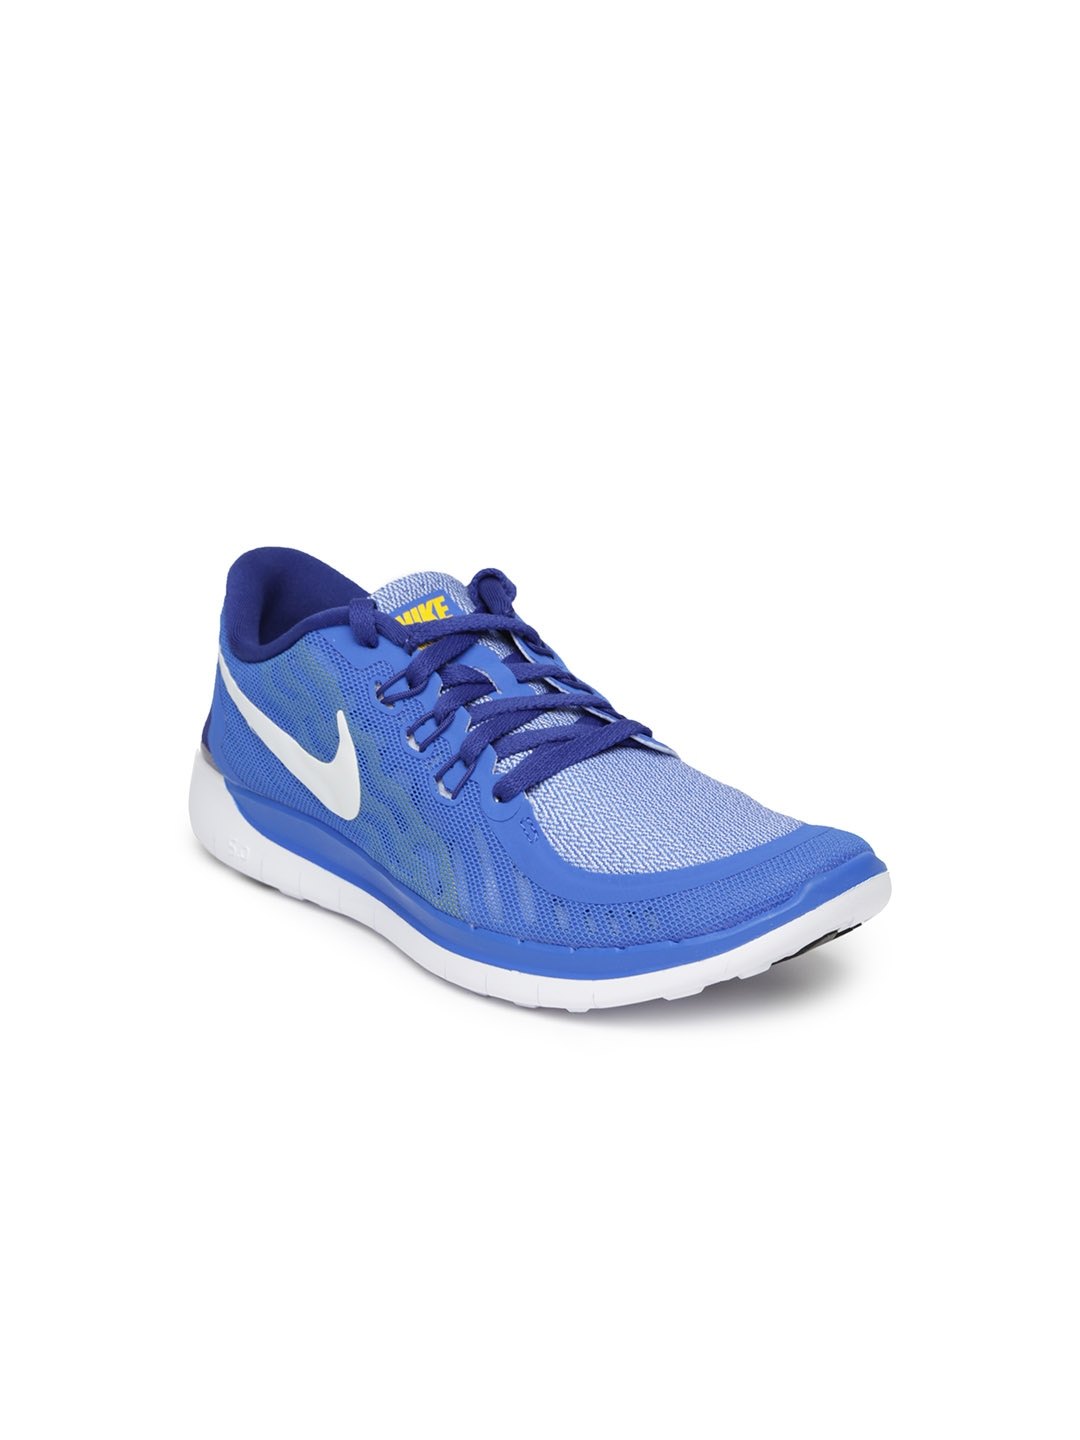 sports shoes for boys 28 images nike air effect boys